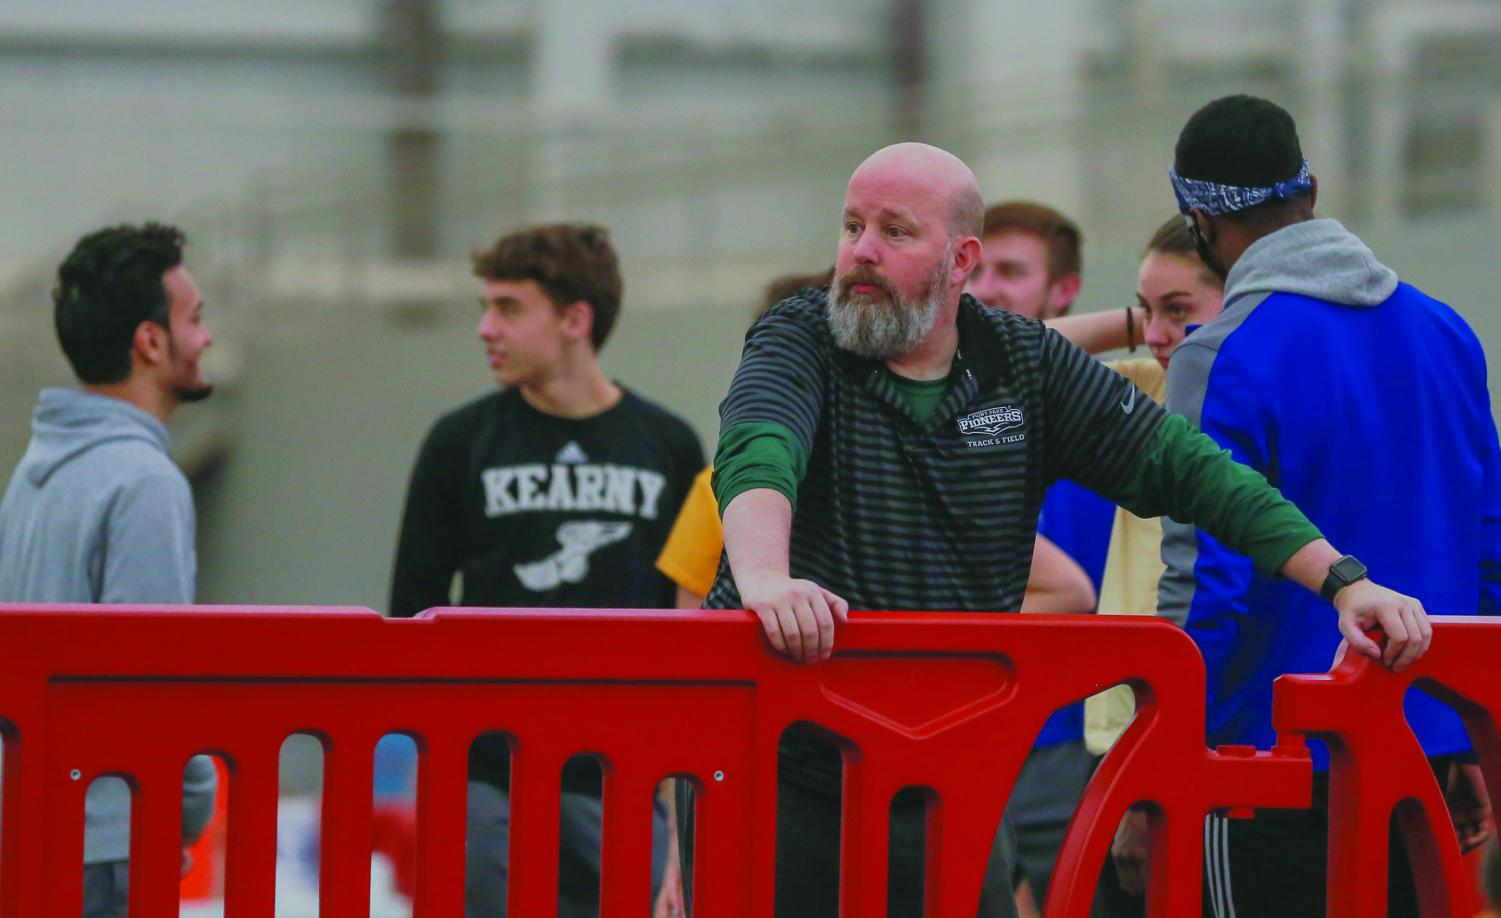 Former head coach of the cross country and track and field teams Kelly Parsley watches his team at a meet during his tenure at Point Park. Parsley was relieved of his employment at the university in February of this year and filed a lawsuit against Point Park last week. The complaint contends unlawful termination because of Parsley's sex and sexual orientation.